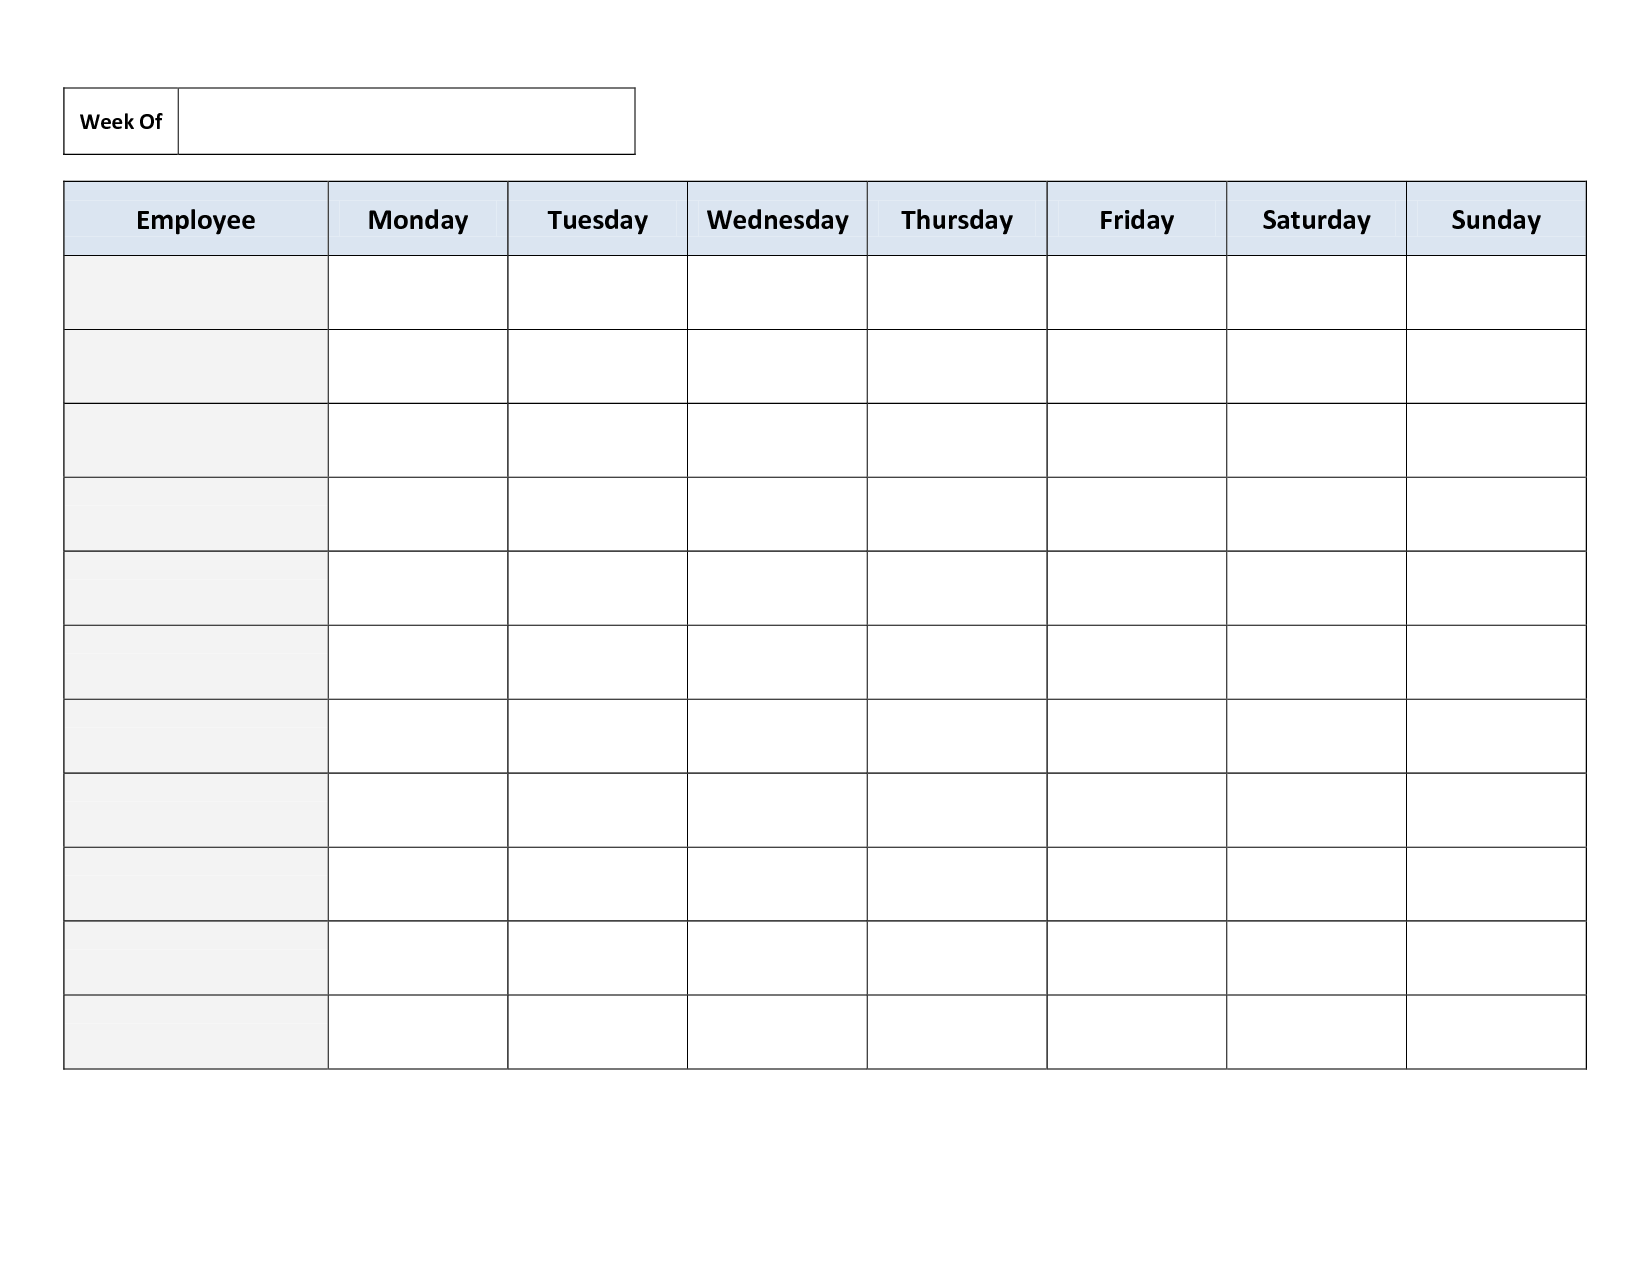 Weekly Employee Work Schedule Template Free Blank Schedulepdf Download Legal Documents In PDF Format